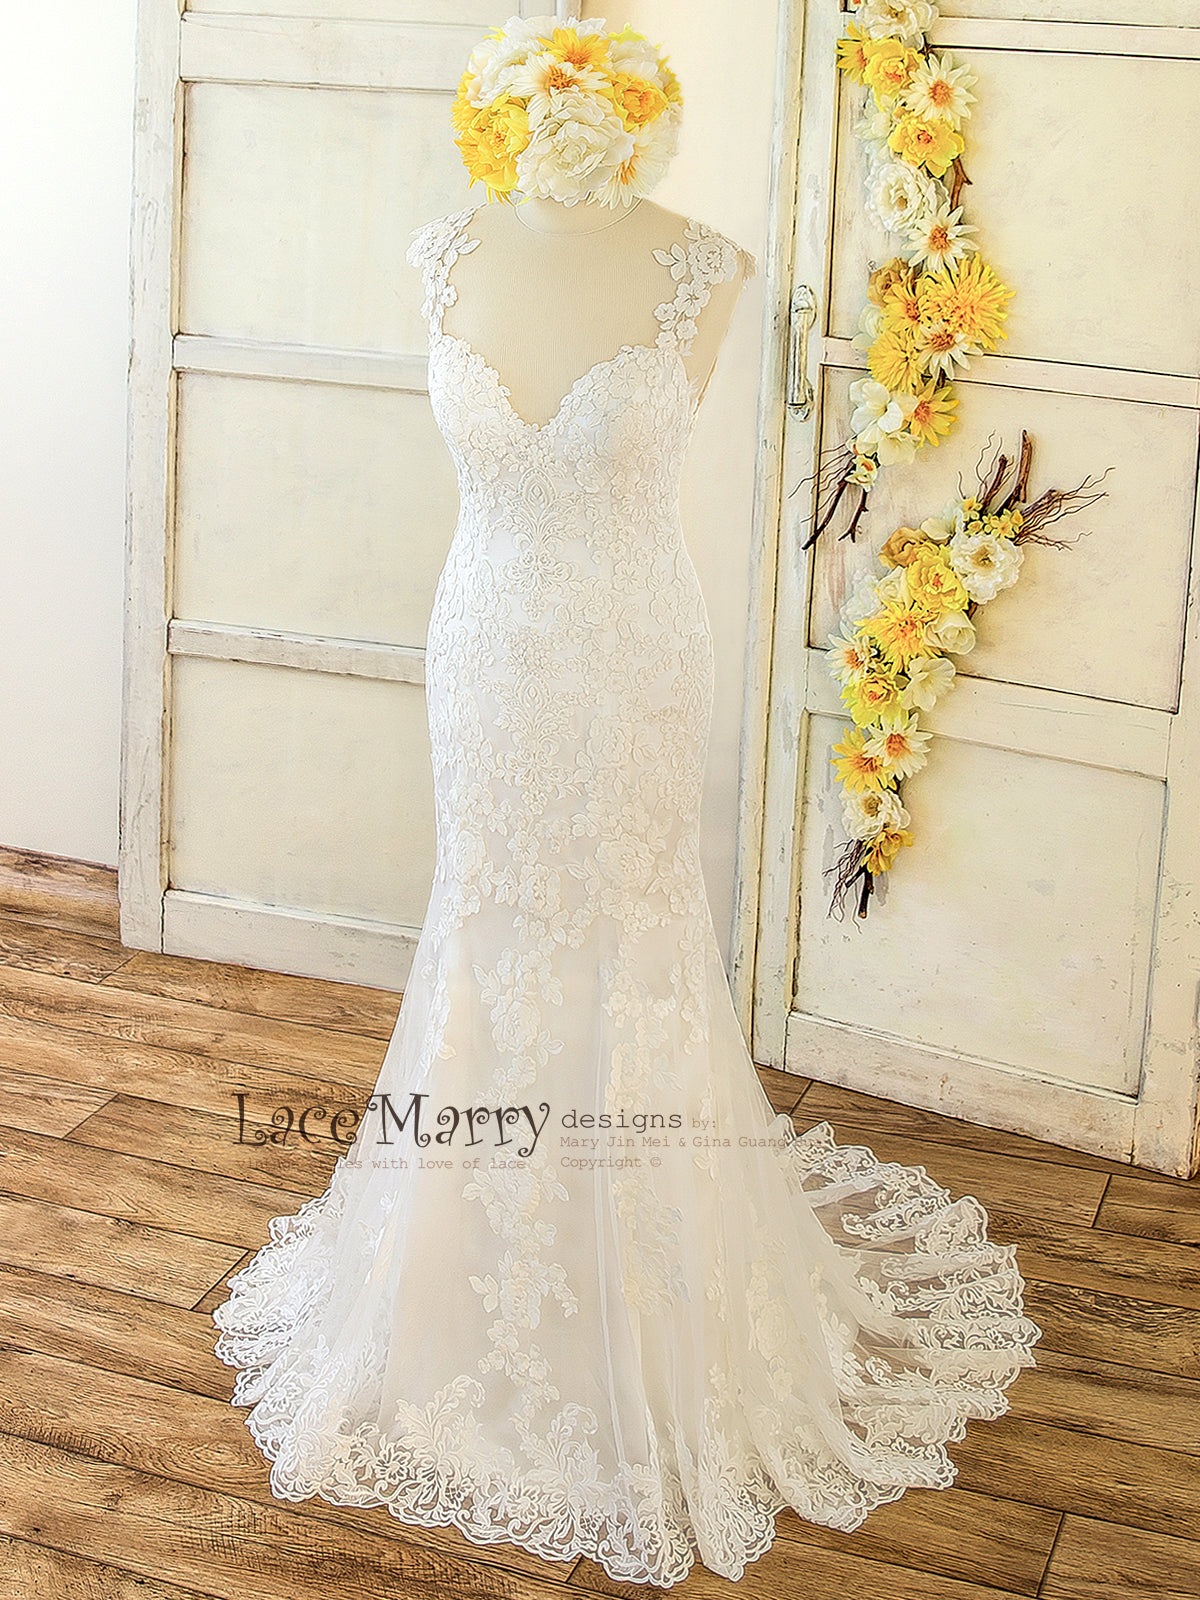 Lace Applique Wedding Dress with Deep Sweetheart Neckline